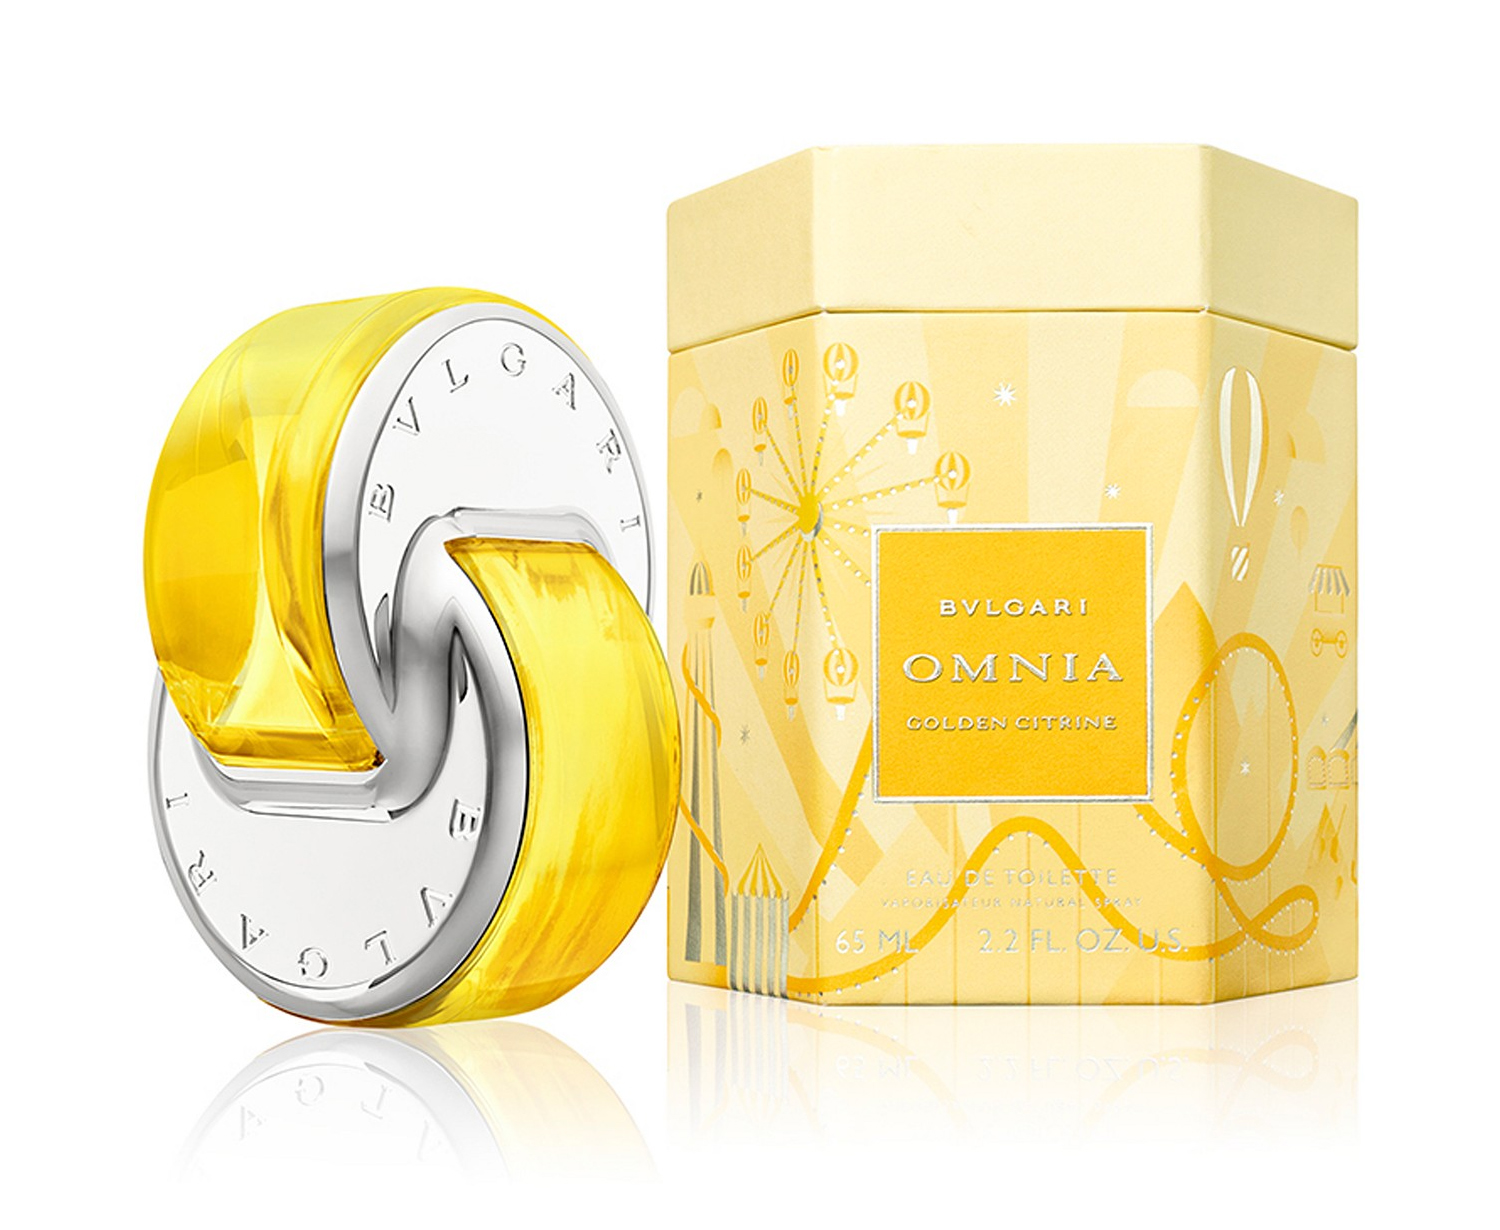 Bvlgari-Omnia-Golden-Citrine-Box-Flacon